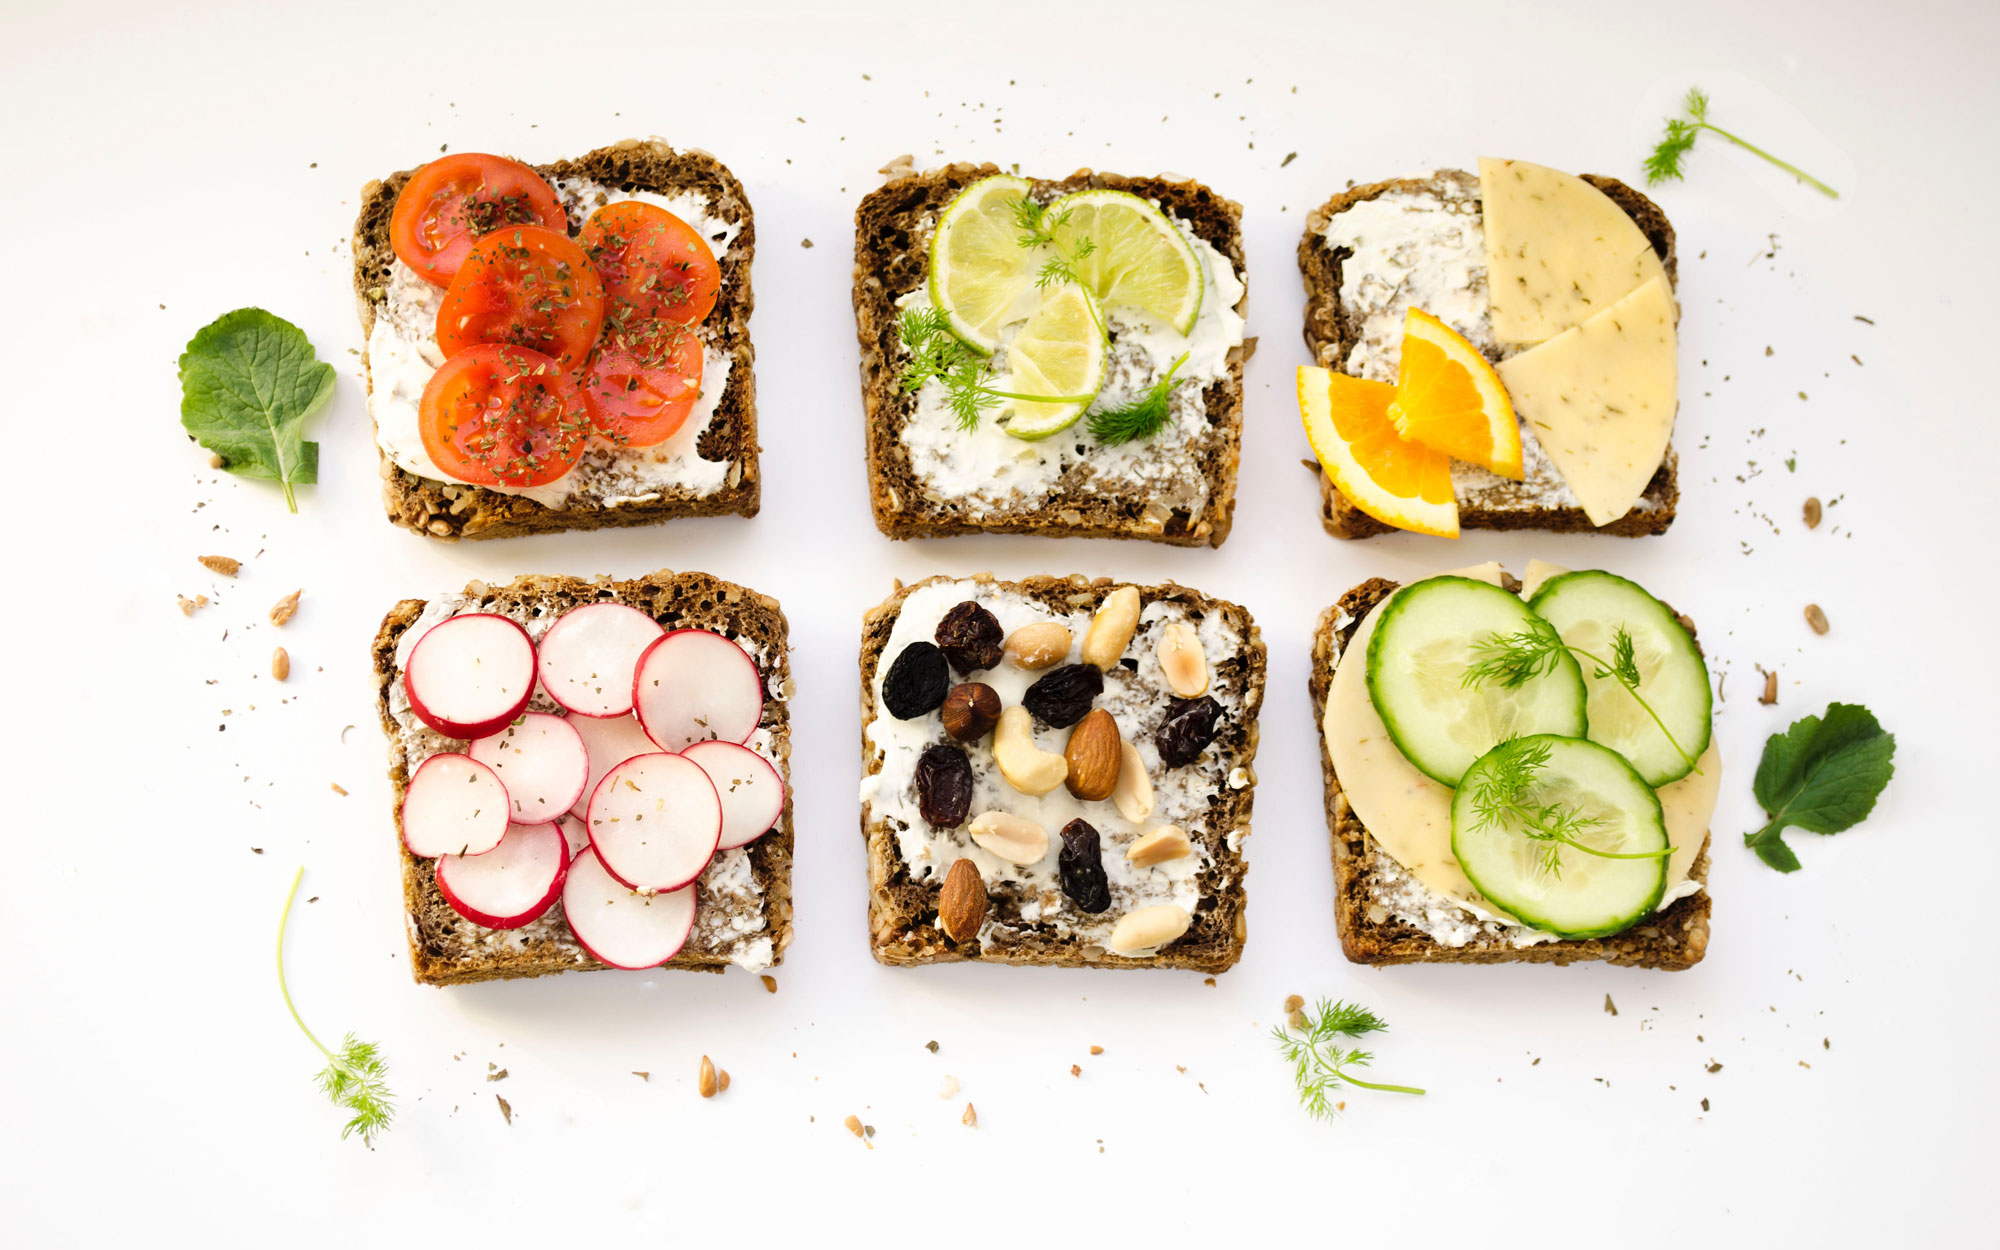 Healthy eating trend in conference food openface sandwiches credit ola mishchenko